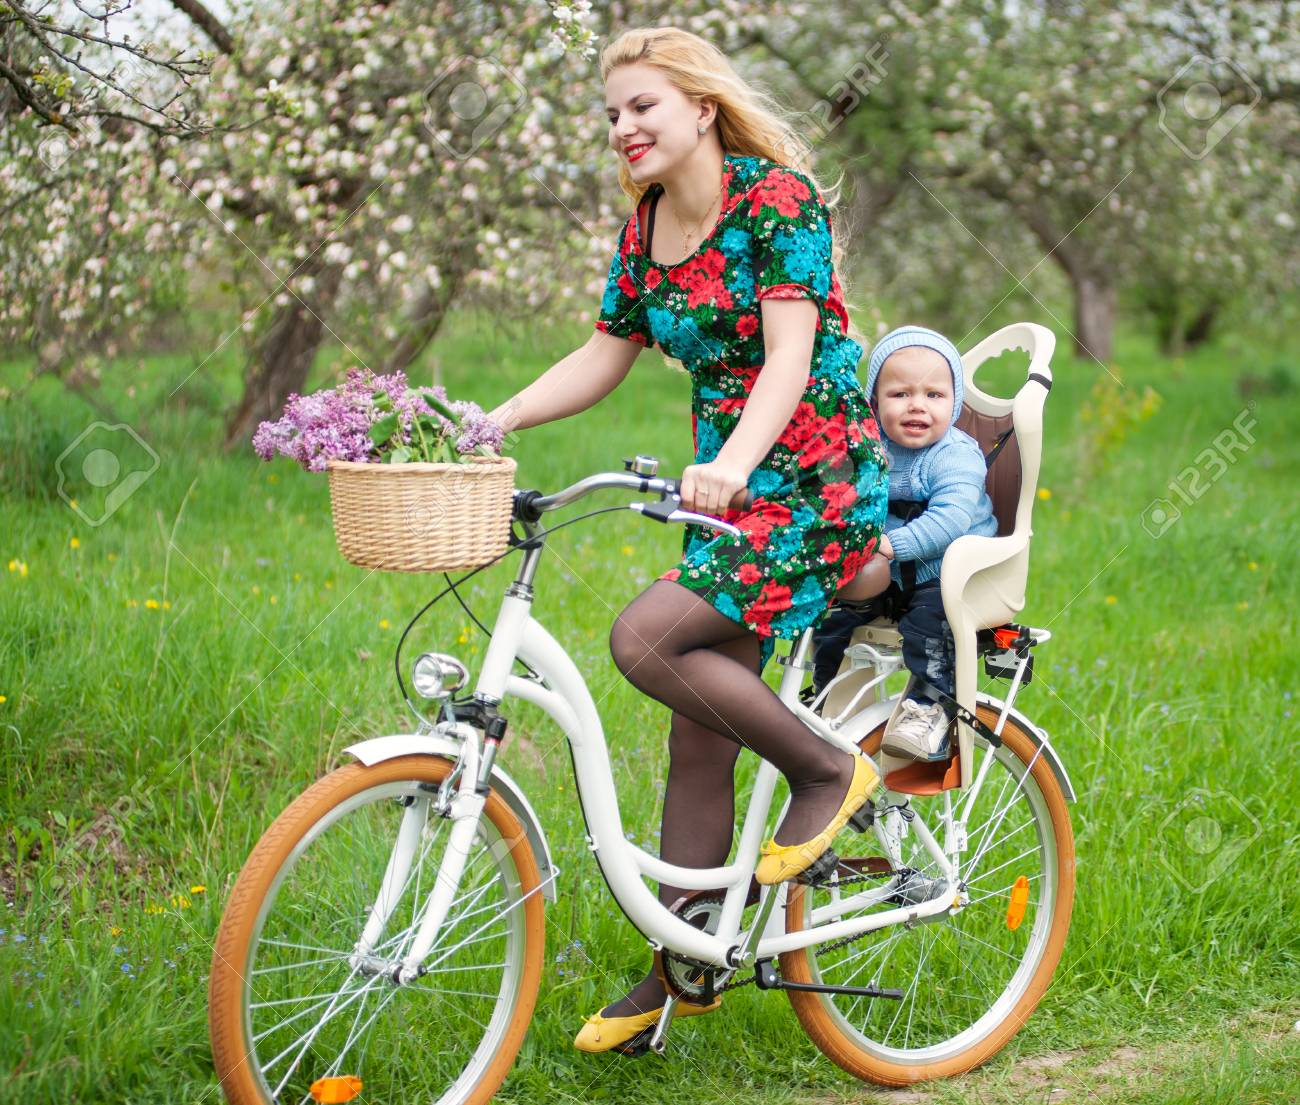 the bike chair kartell mademoiselle blonde female with long hair in dress riding city bicycle baby